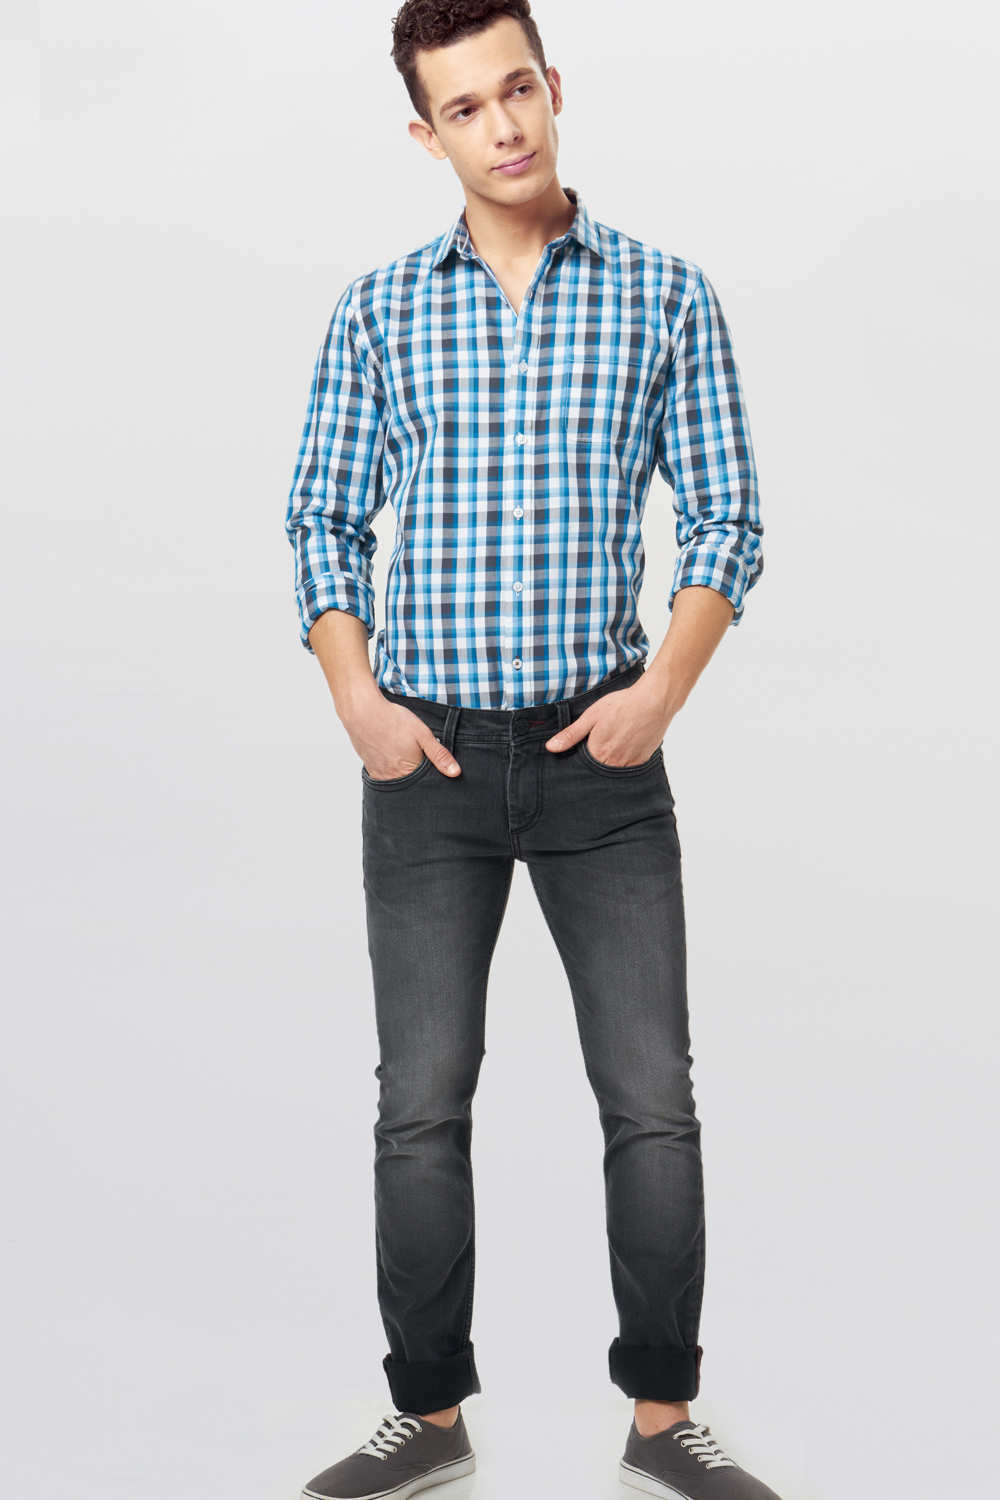 Basics Slim Fit Blue Moon Checks Shirt 16bsh34777